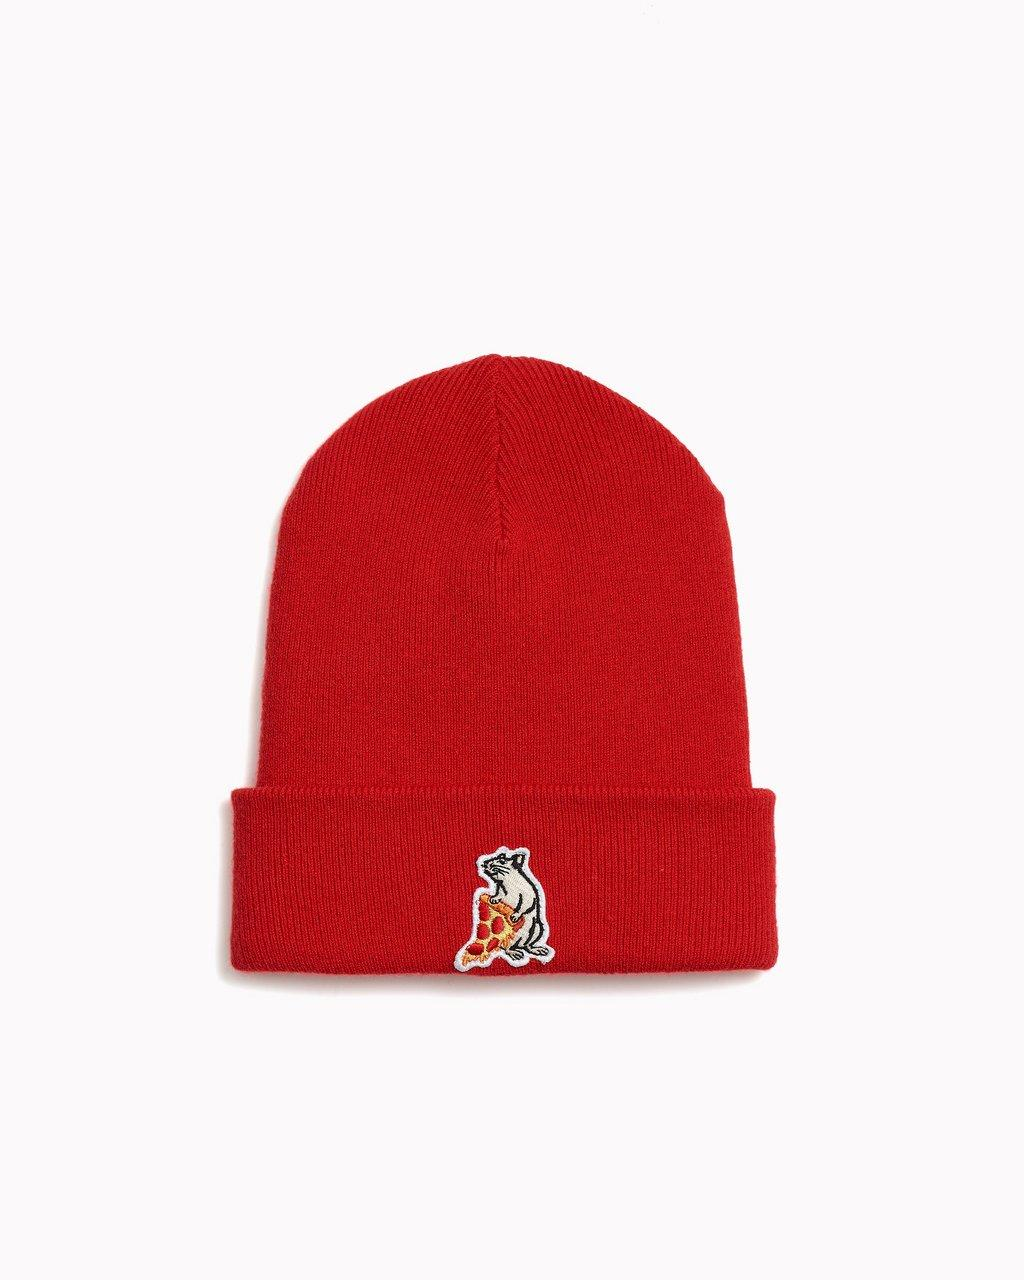 PIZZA RAT PATCH BEANIE